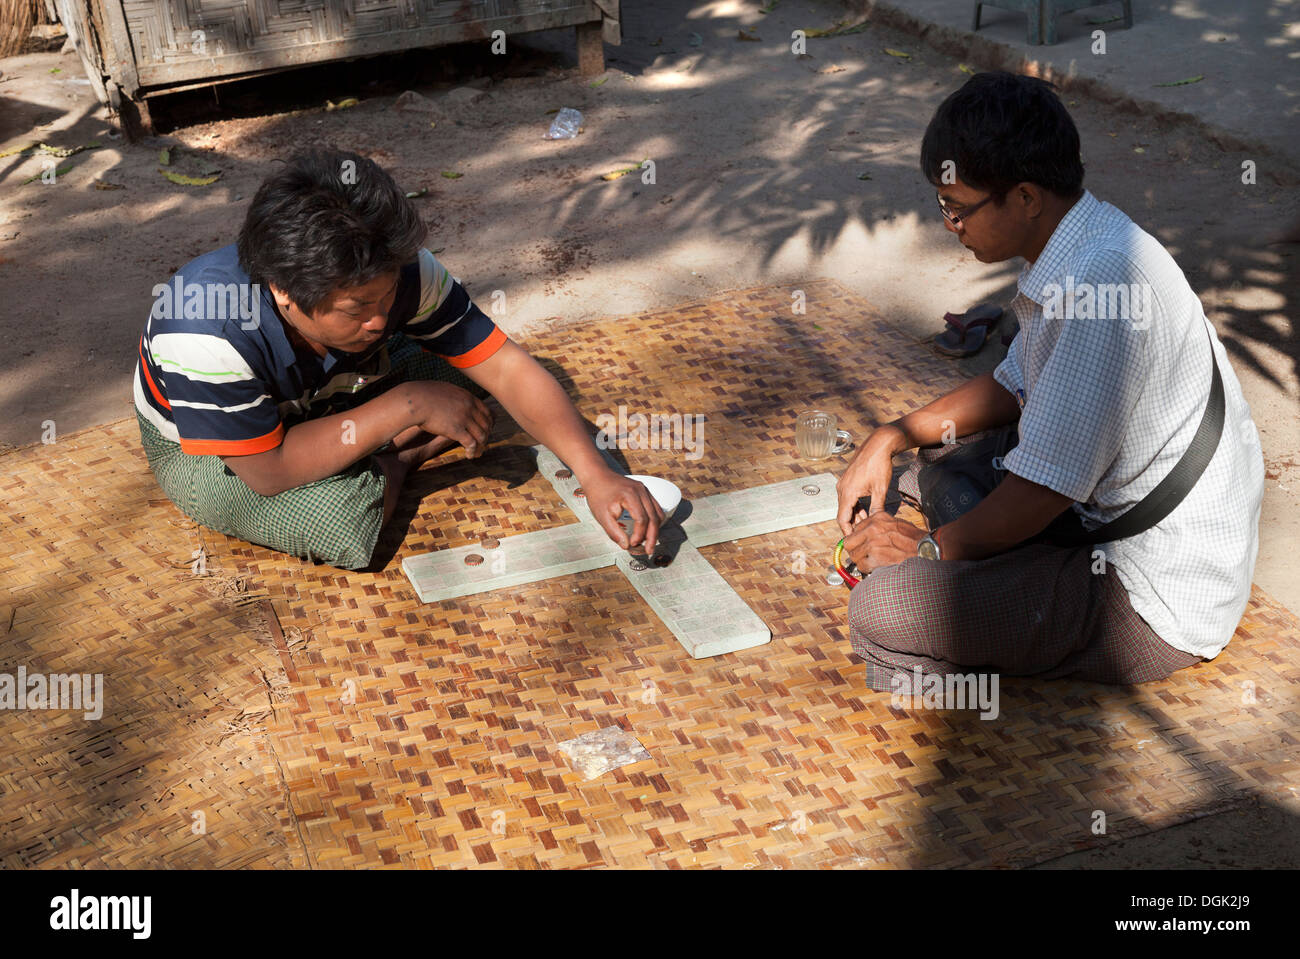 An unusual board game being played in the street in Mandalay in Myanmar. - Stock Image